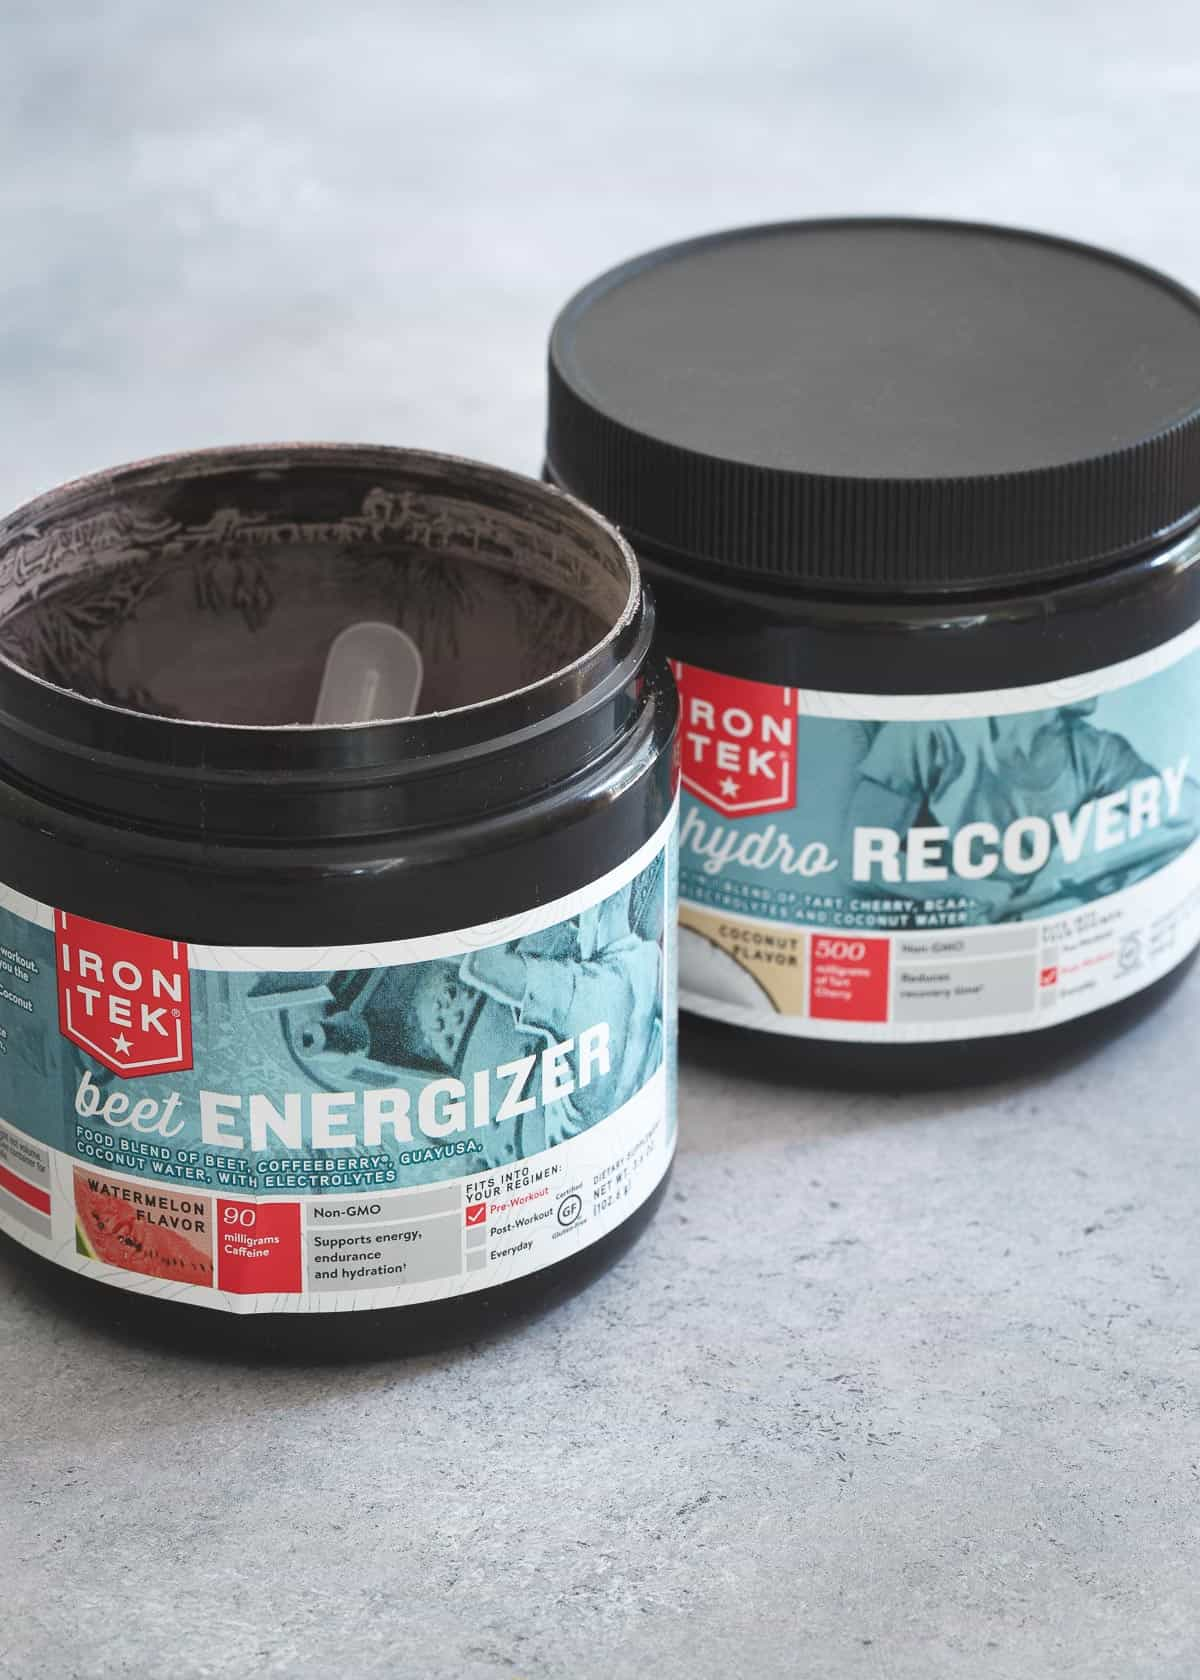 IronTek watermelon beet energizer and tart cherry coconut hydro recovery help to both boost your energy and recover faster from your workouts.